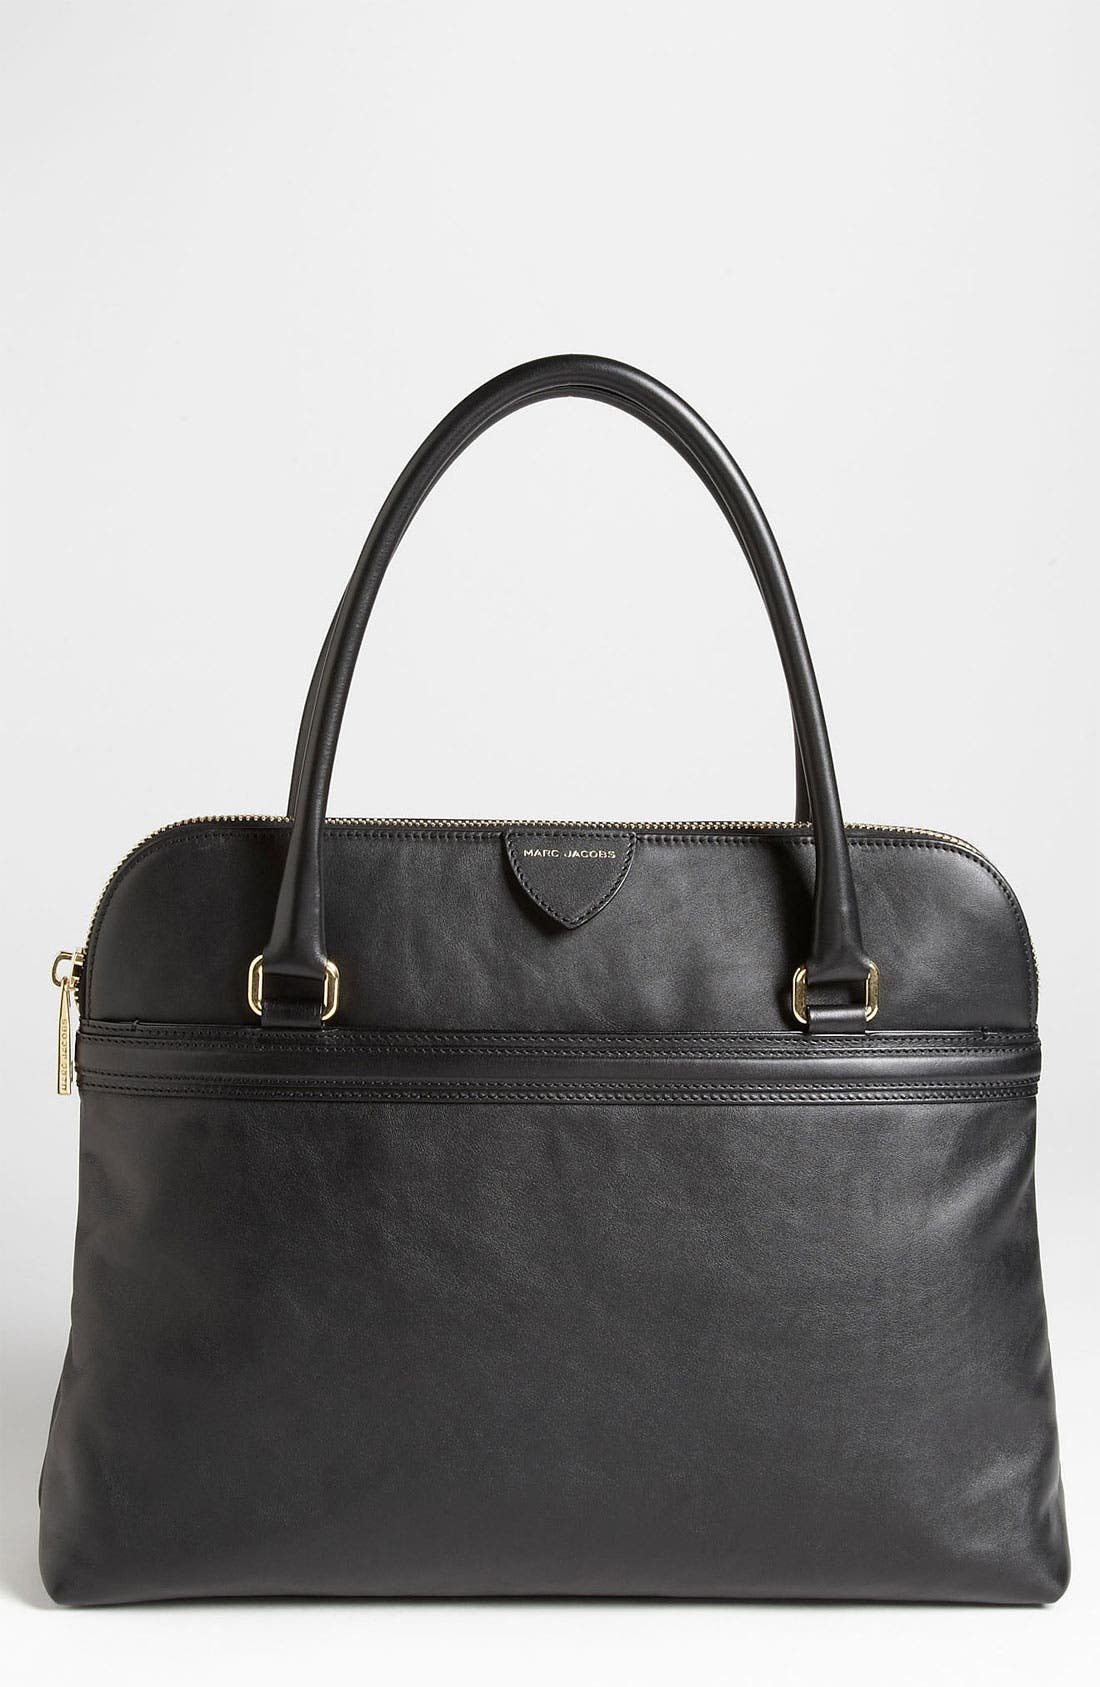 Alternate Image 1 Selected - MARC JACOBS 'Raleigh' Leather Satchel